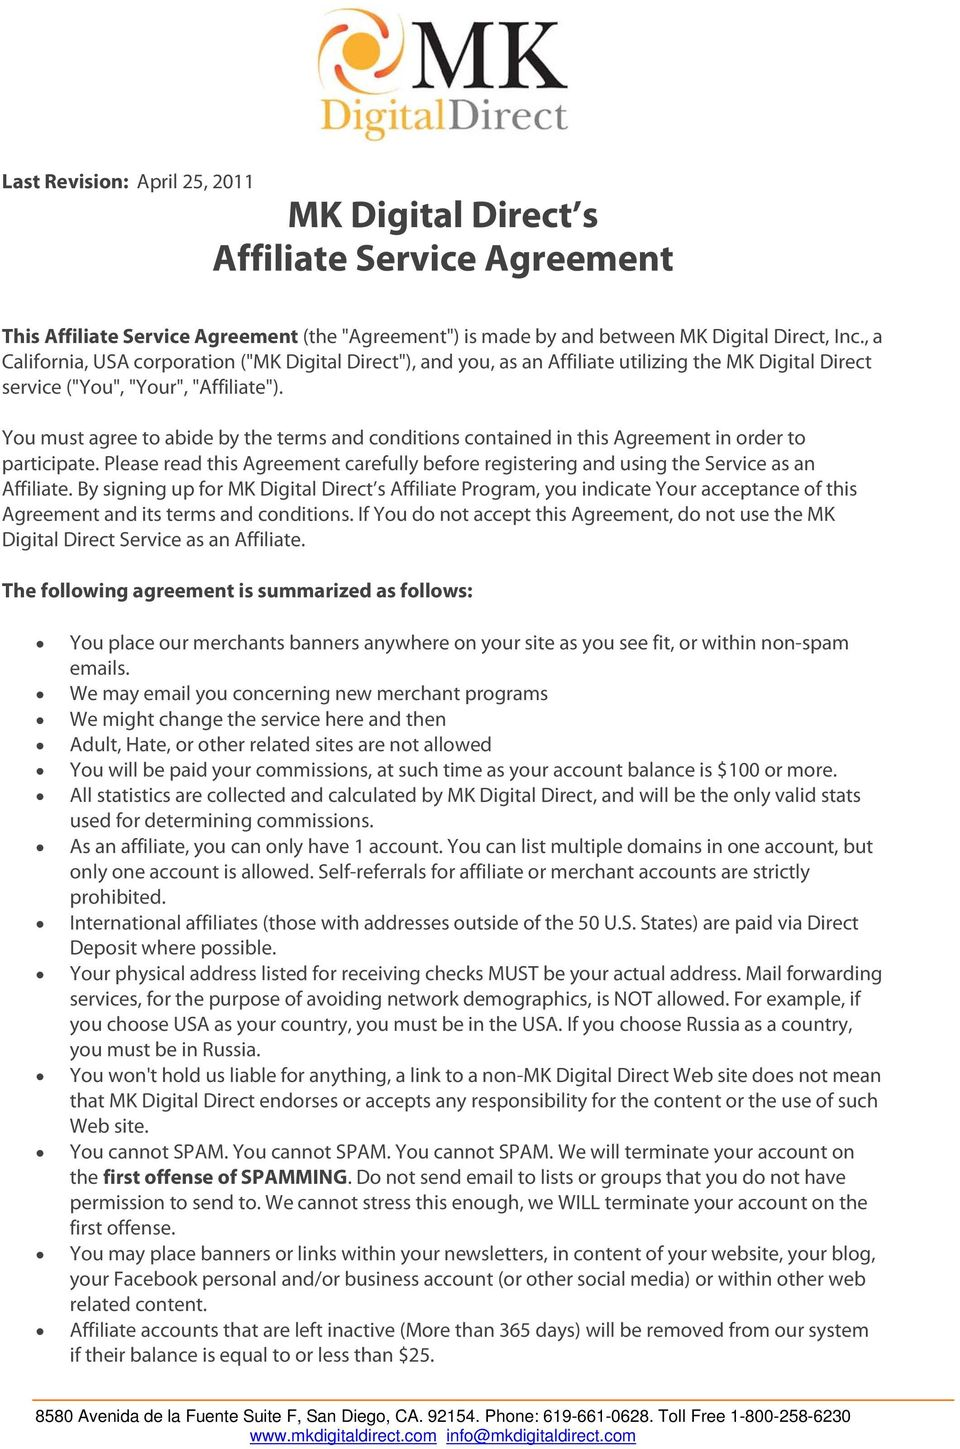 You must agree to abide by the terms and conditions contained in this Agreement in order to participate. Please read this Agreement carefully before registering and using the Service as an Affiliate.